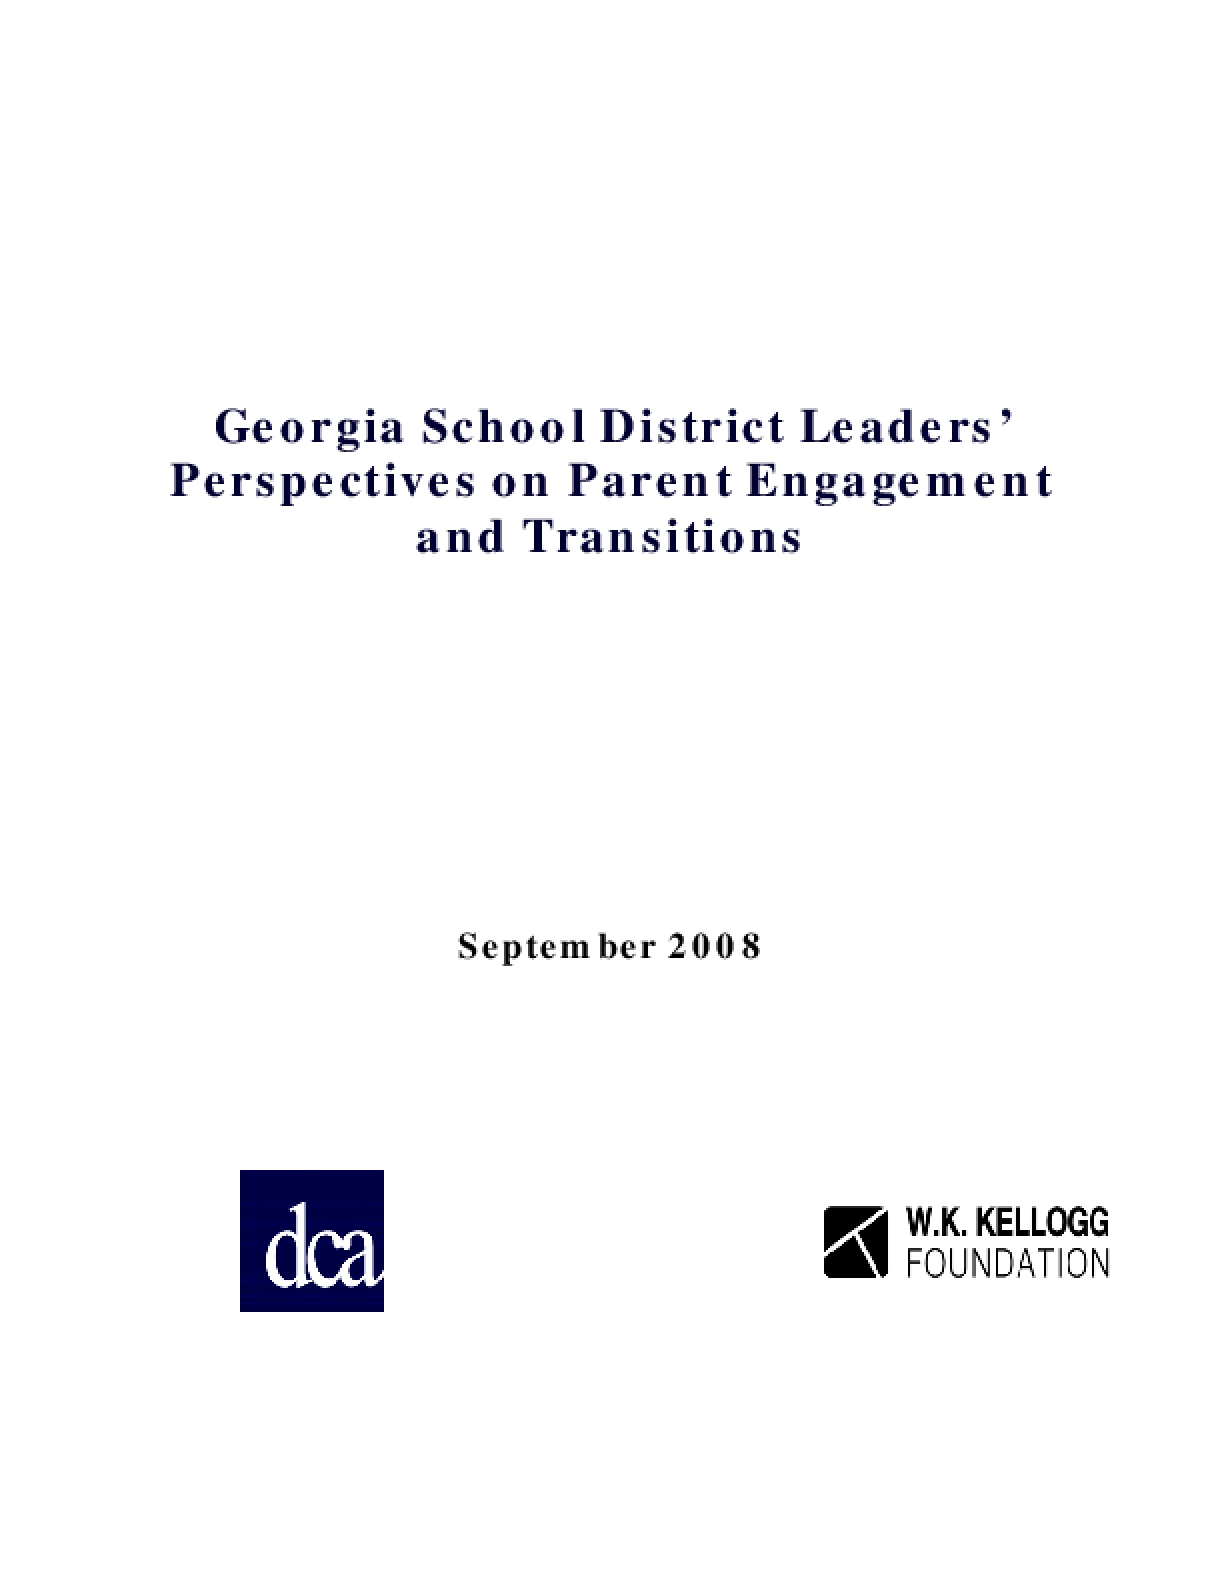 Georgia School District Leaders' Perspectives on Parent Engagement and Transitions